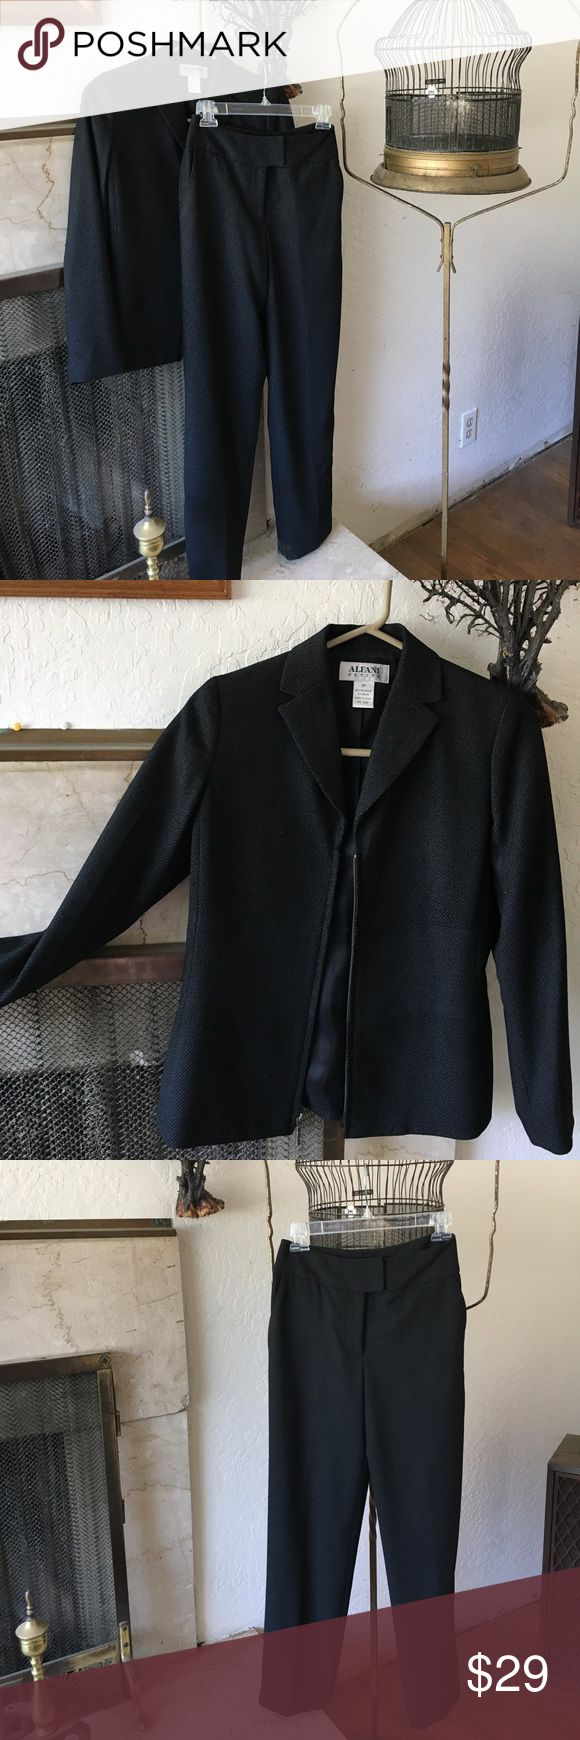 """Vintage ALFANI Petite Suit ALFANI Petite vintage suit w/ zipper blazer. Size 2, from top of pant band to bottom of cuff 38"""". Both blazer & pant lined. In very good condition. Alfani Other"""